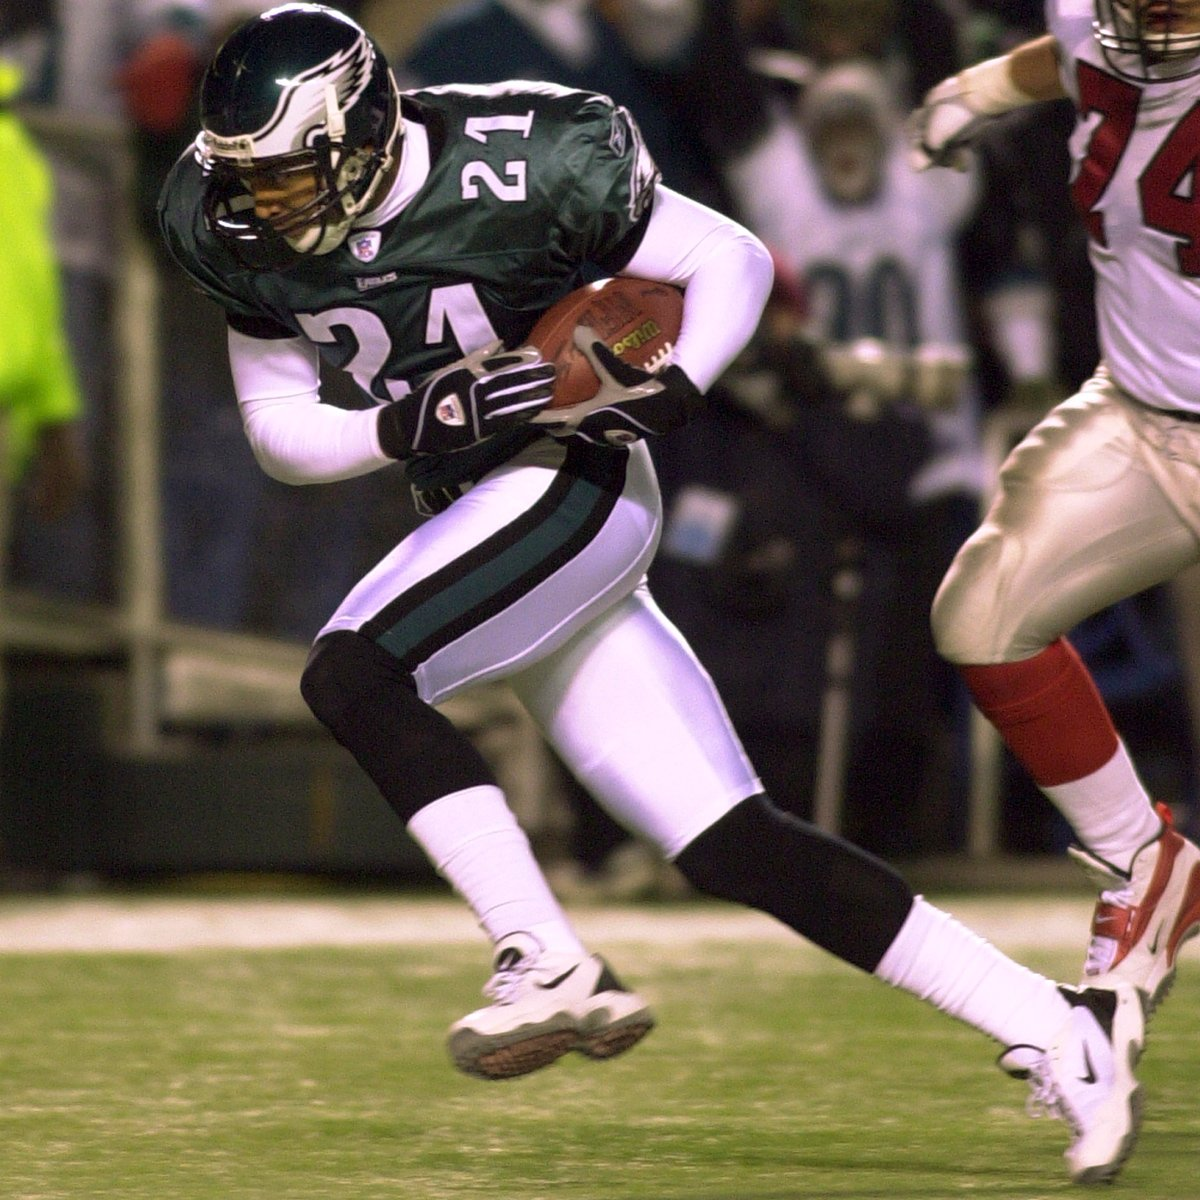 April 22nd has been good to us.  On this day in 1995, we selected @BobbyTaylor21. Fifteen years later, we selected @brandongraham55.   #FlyEaglesFly <br>http://pic.twitter.com/KX80VDDtbi